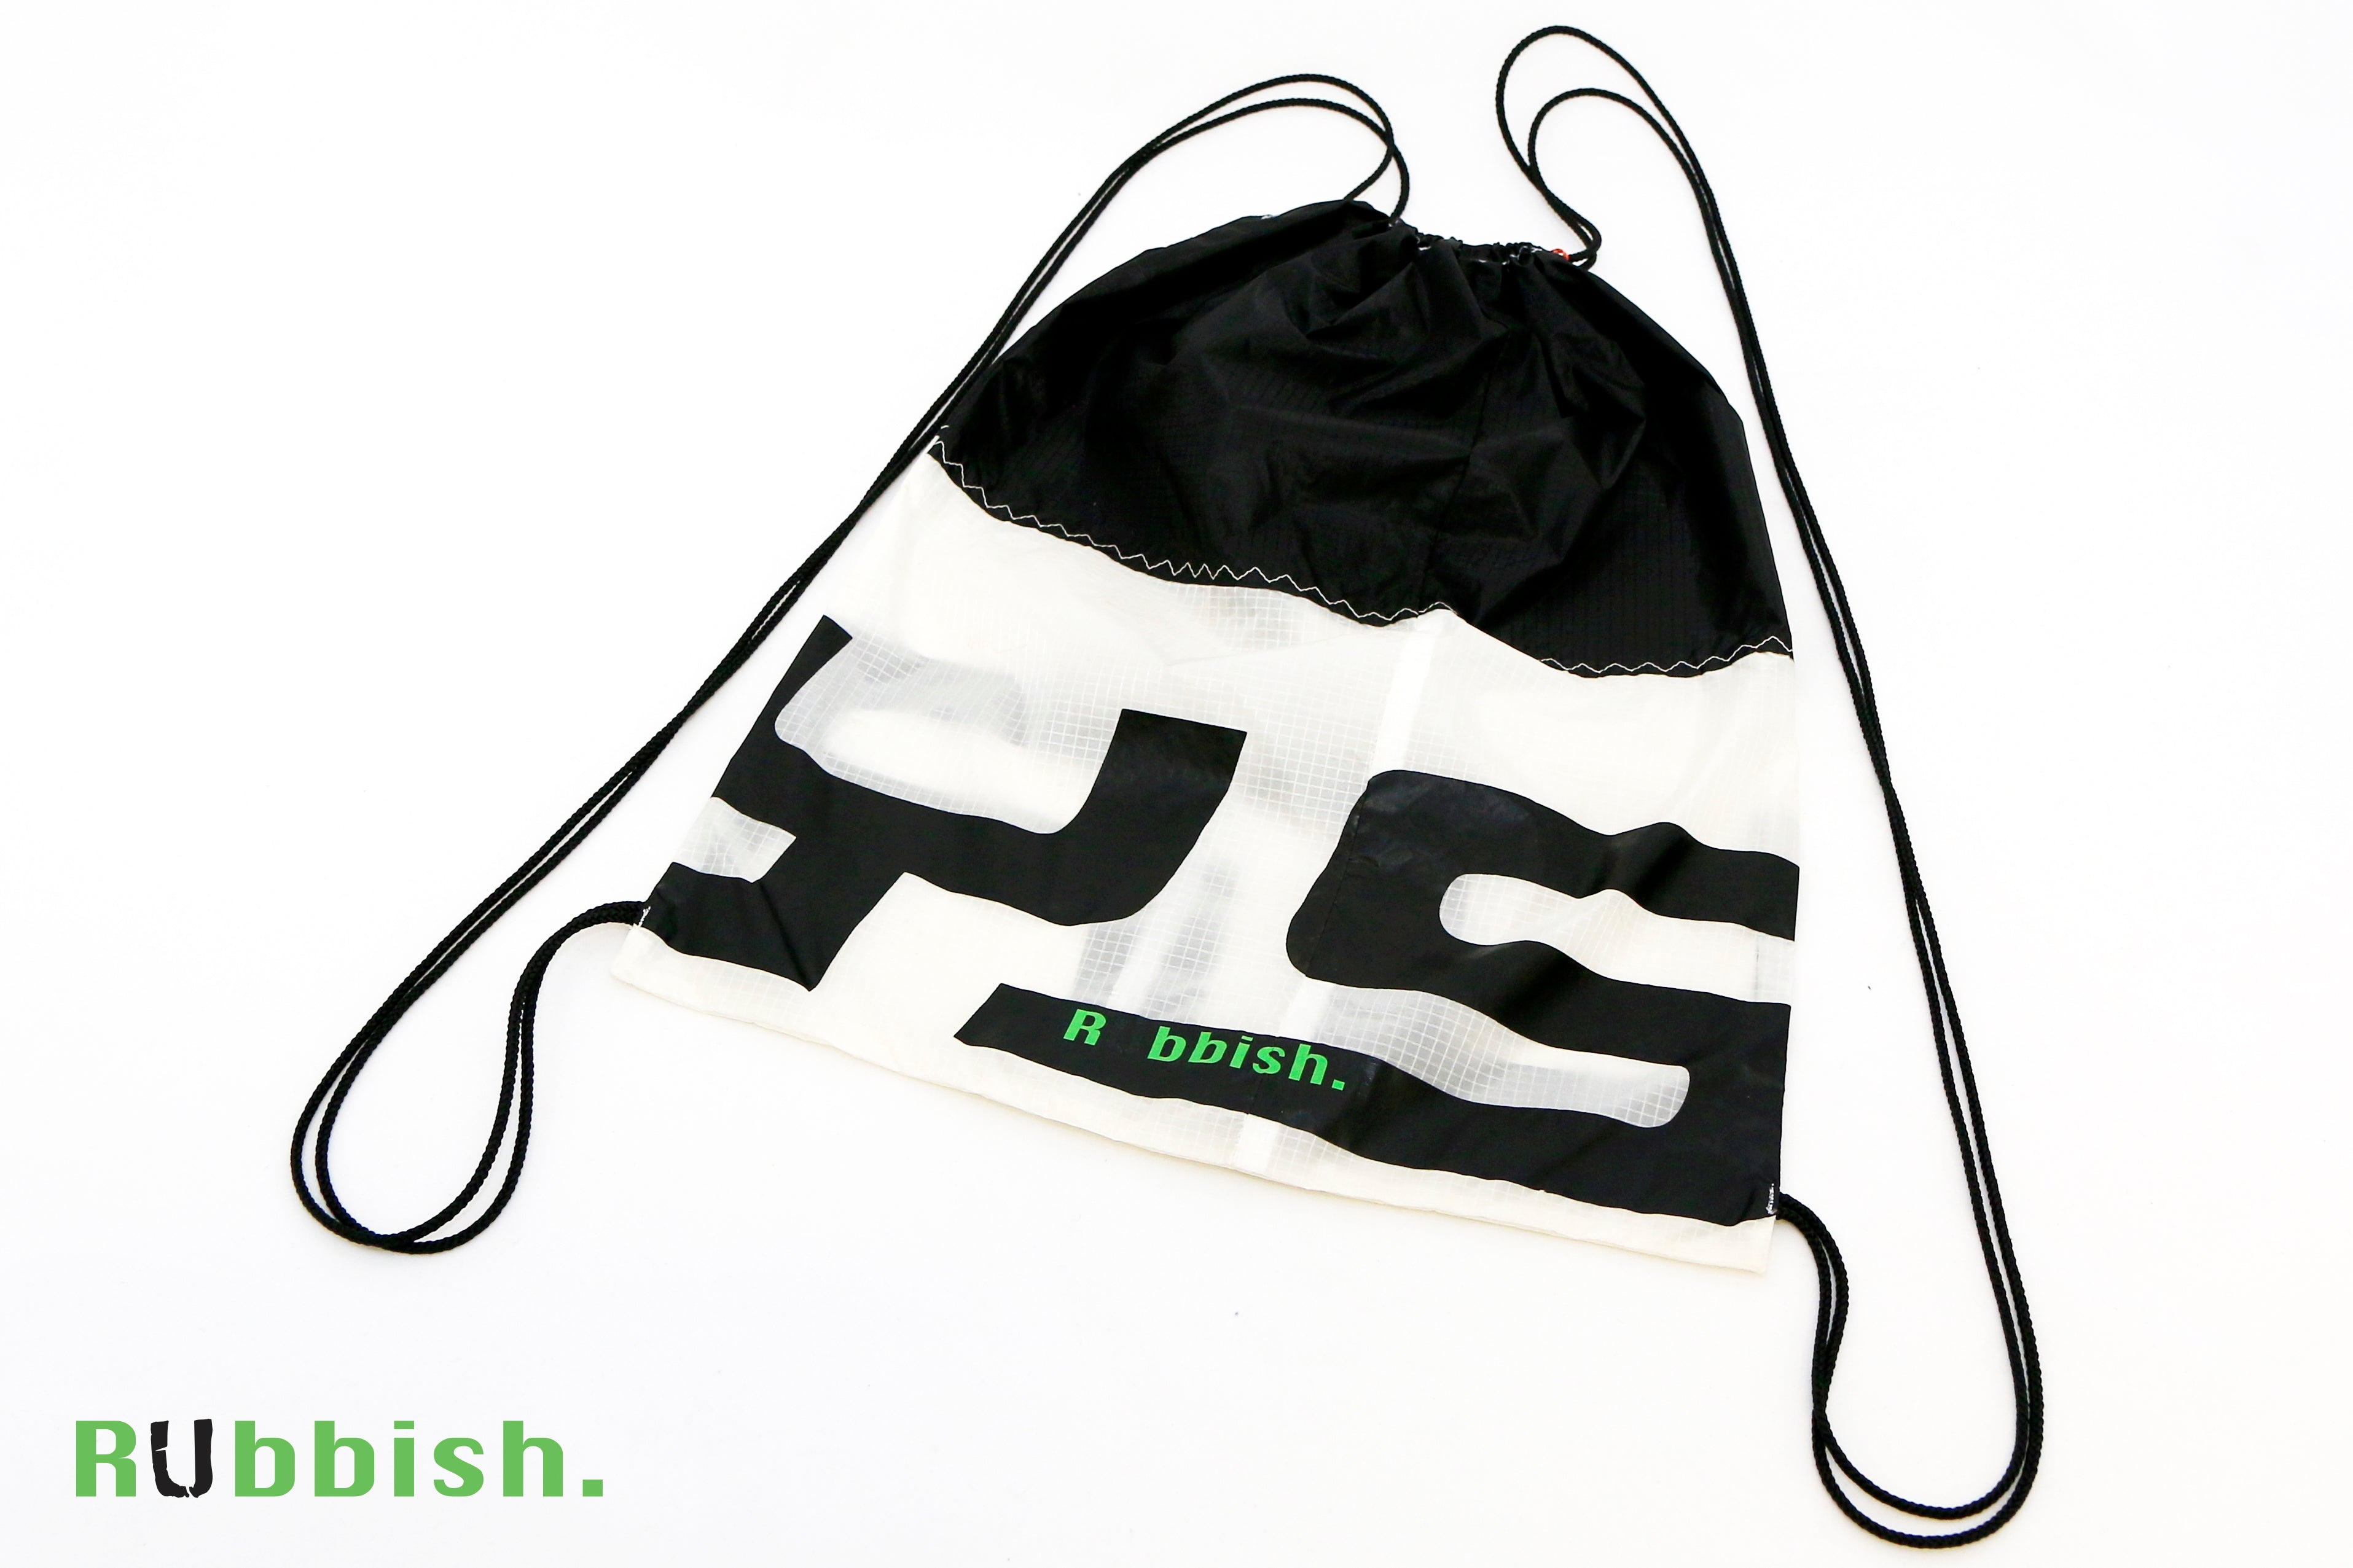 bag made of recycled flysurfer kite